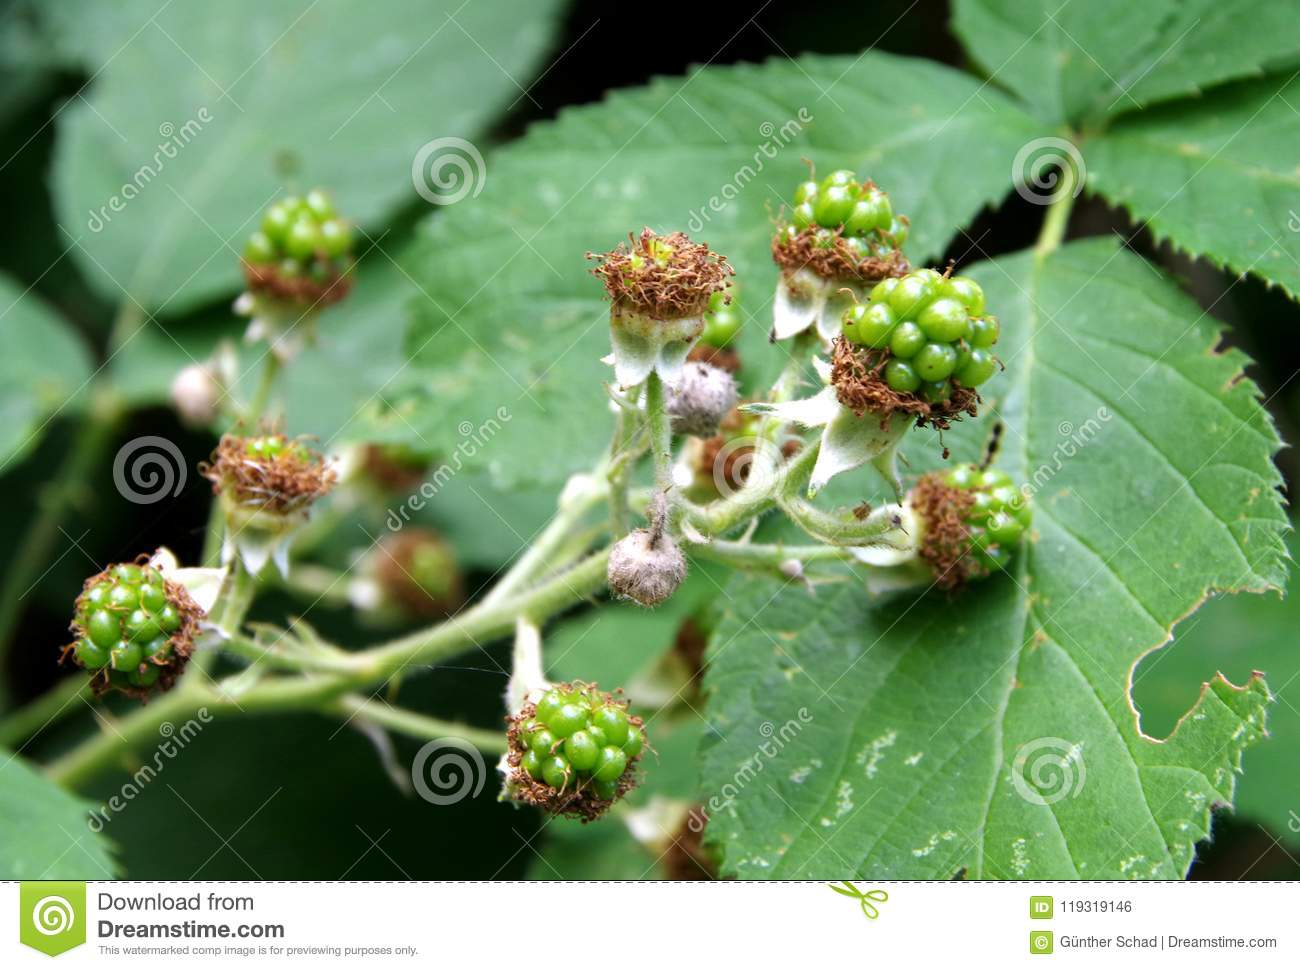 Blackberries in the beginning stage at the bush